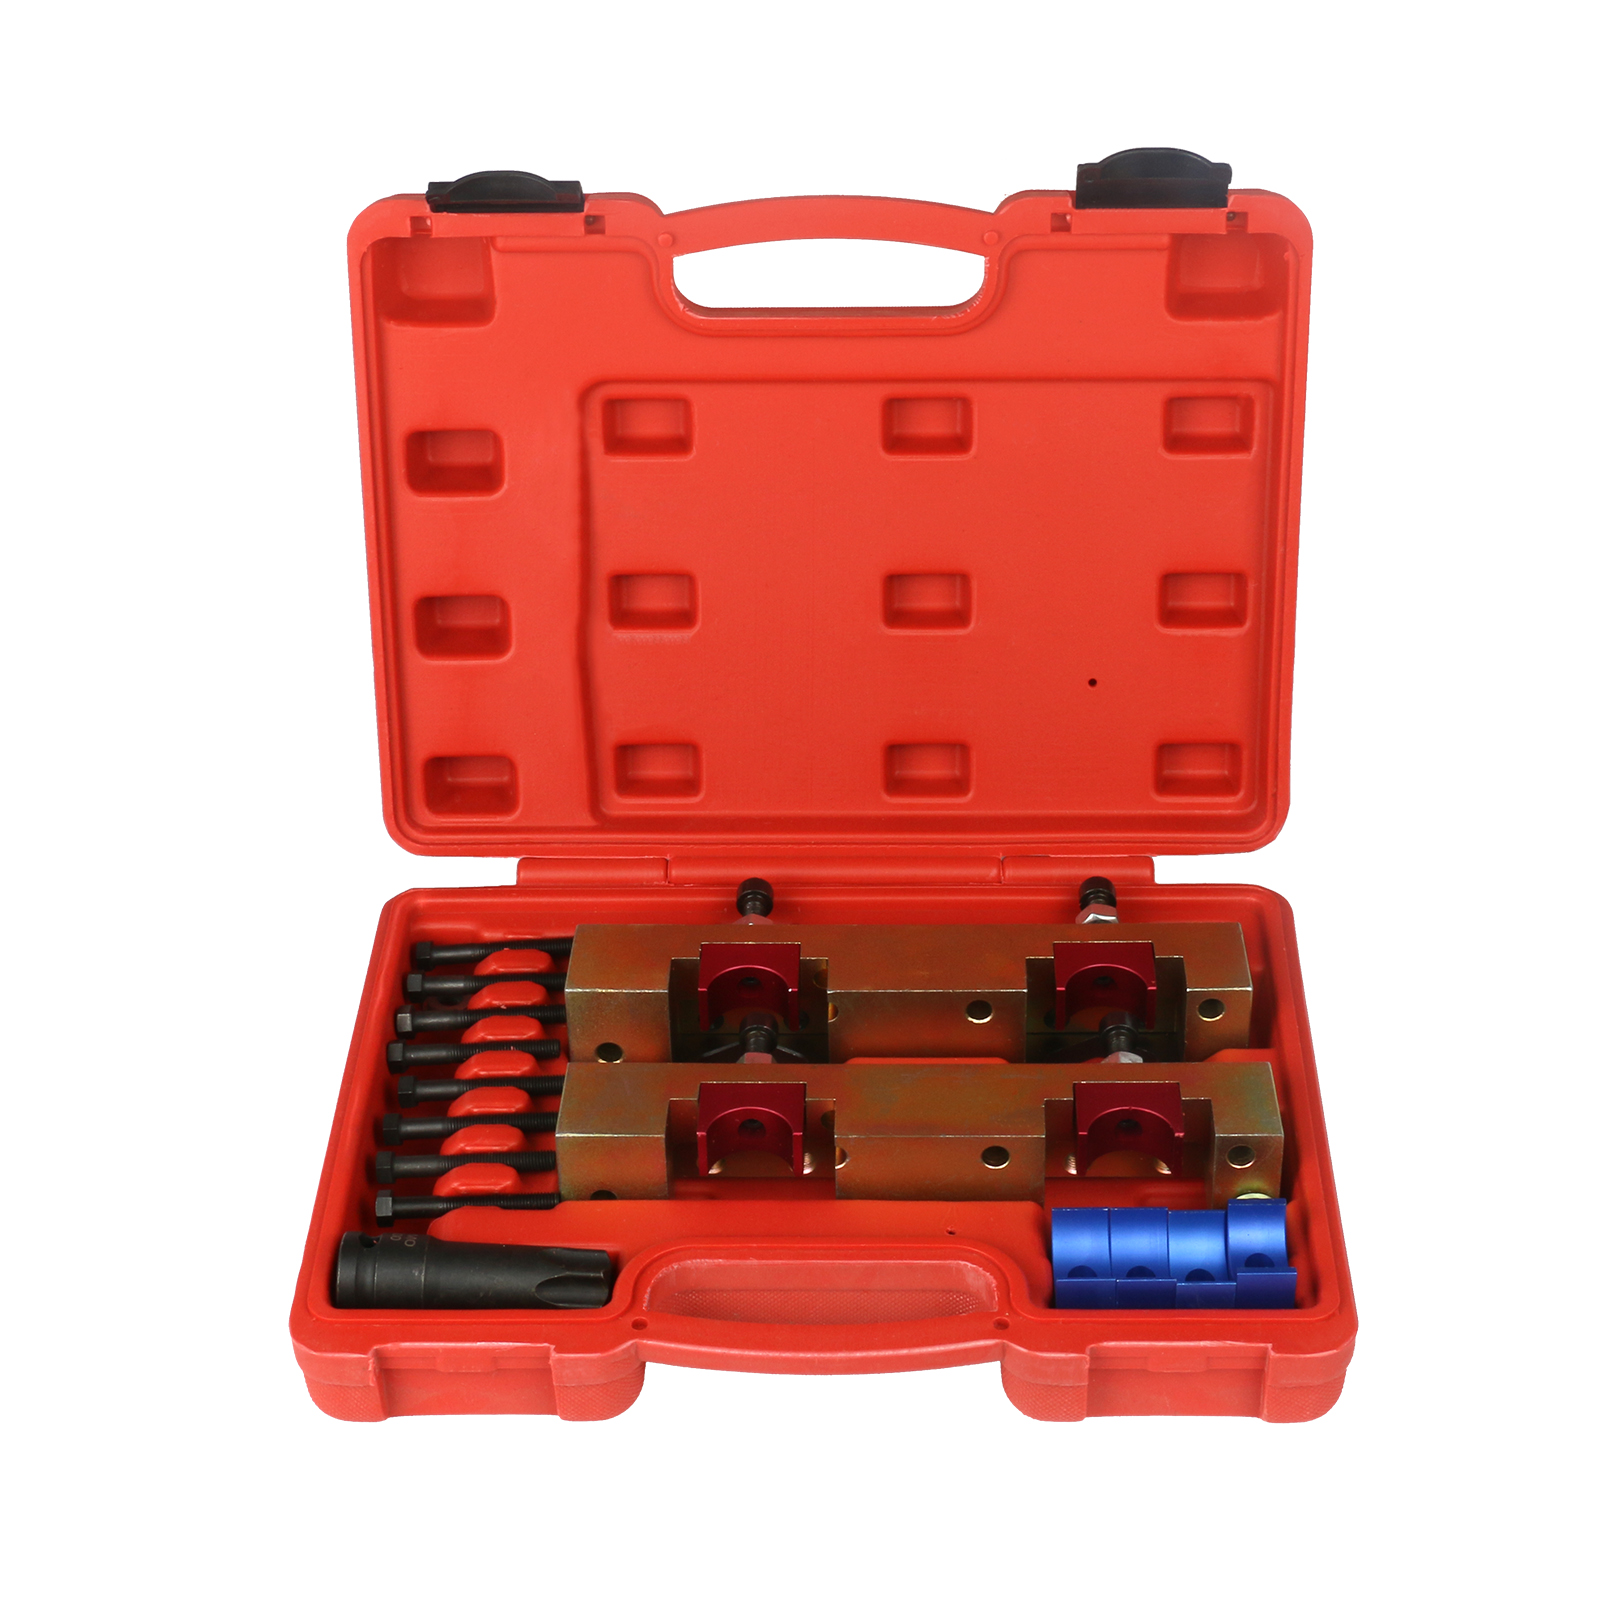 Engine Timing Tool For Mecedes Benz M270 M274 B200 B180 B250 Engine T100 socket